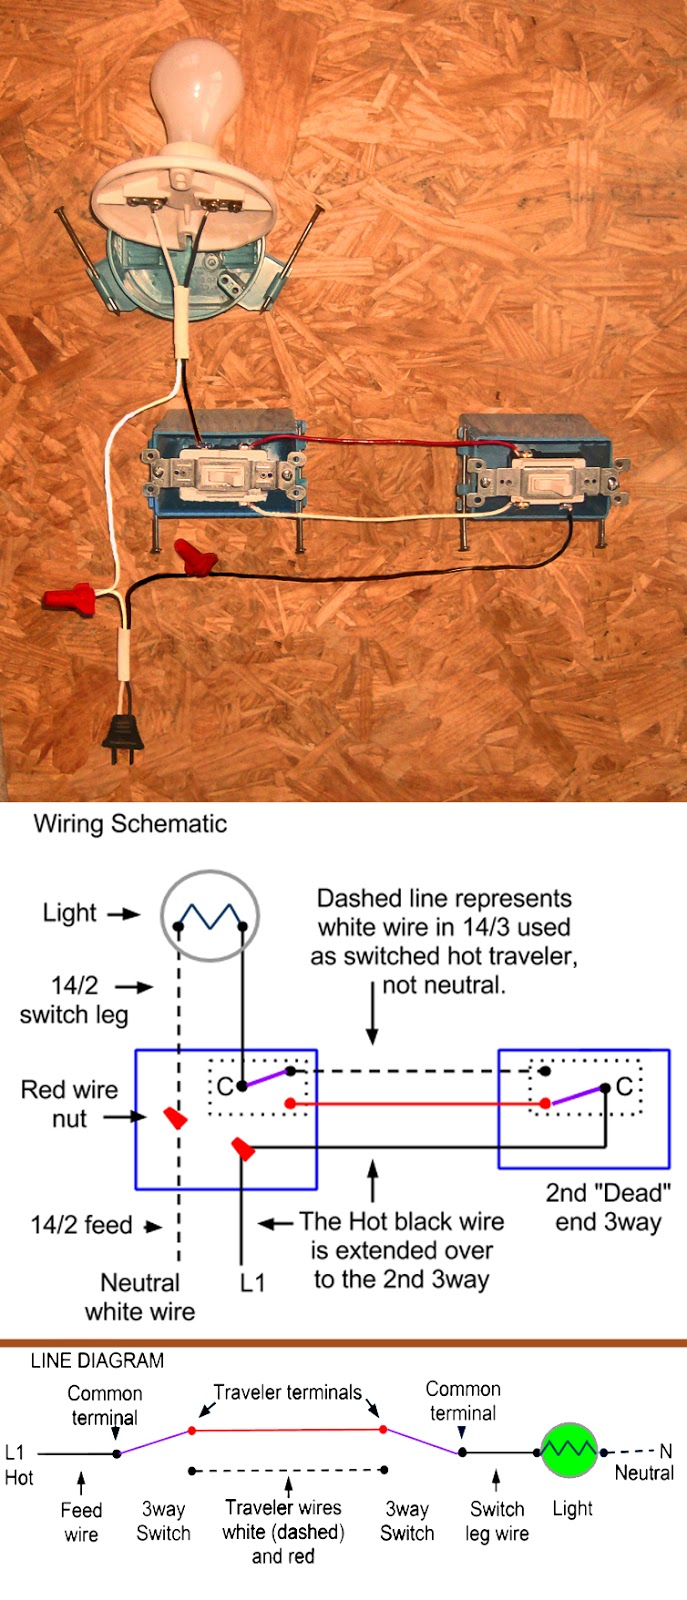 3 Way Light Wiring Switch Methods Reinvent Your Diagram Dead End And Radical S3 Rh S3switch Blogspot Com Variations